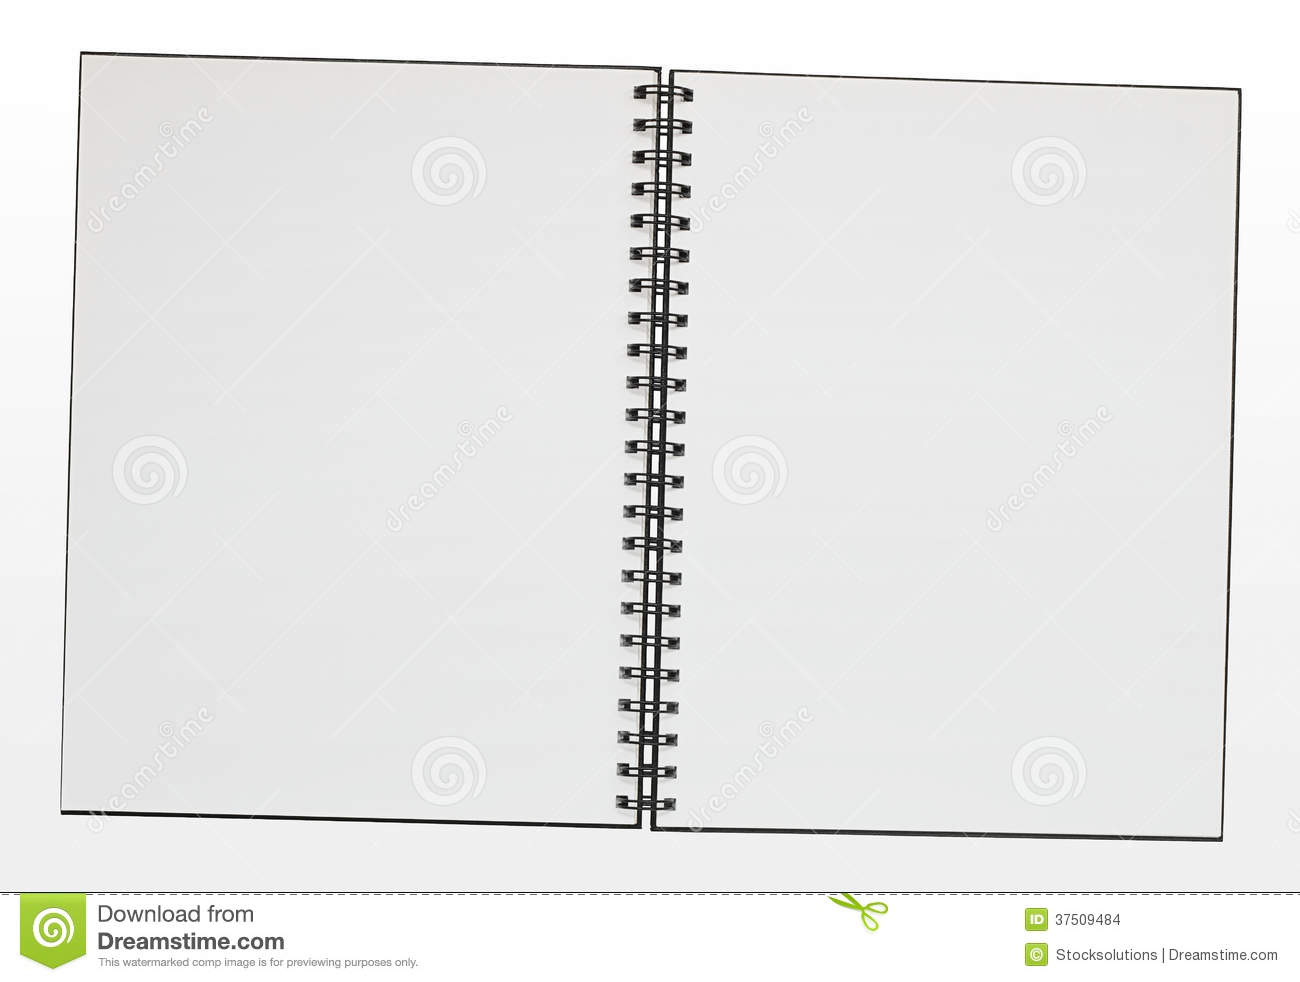 Blank Ring Binder Pad Border Double Page Spread Empty Bound Note Copy Space Clipping Path Included Easy Selection on spiral notebook border